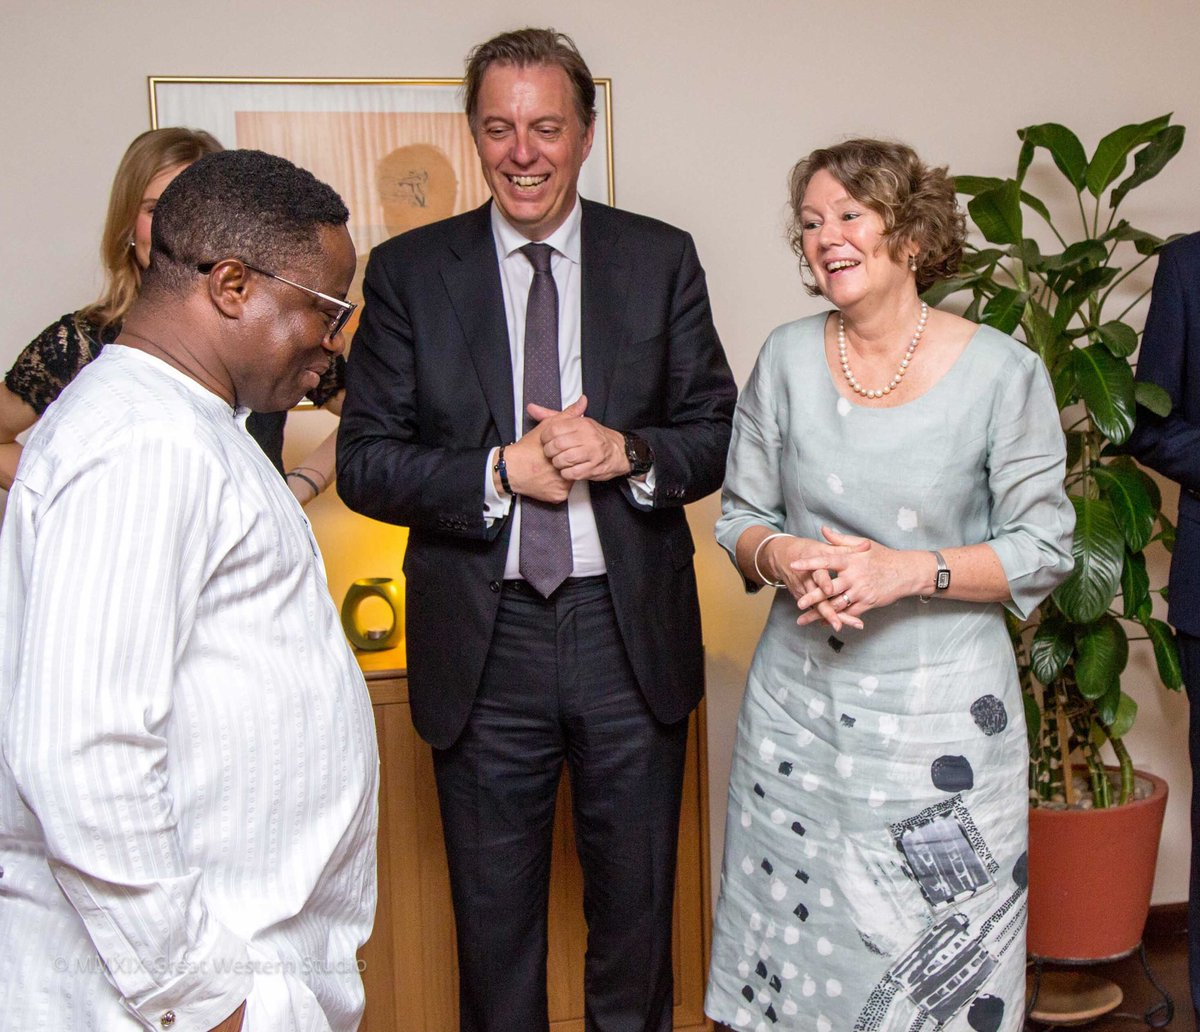 Enjoyable dinner in the residence with Maersk Drilling CEO Jorn Madsen and Minister for Energy Hon. John Peter Amewu. I may get a chance to visit a rig and I am so excited!